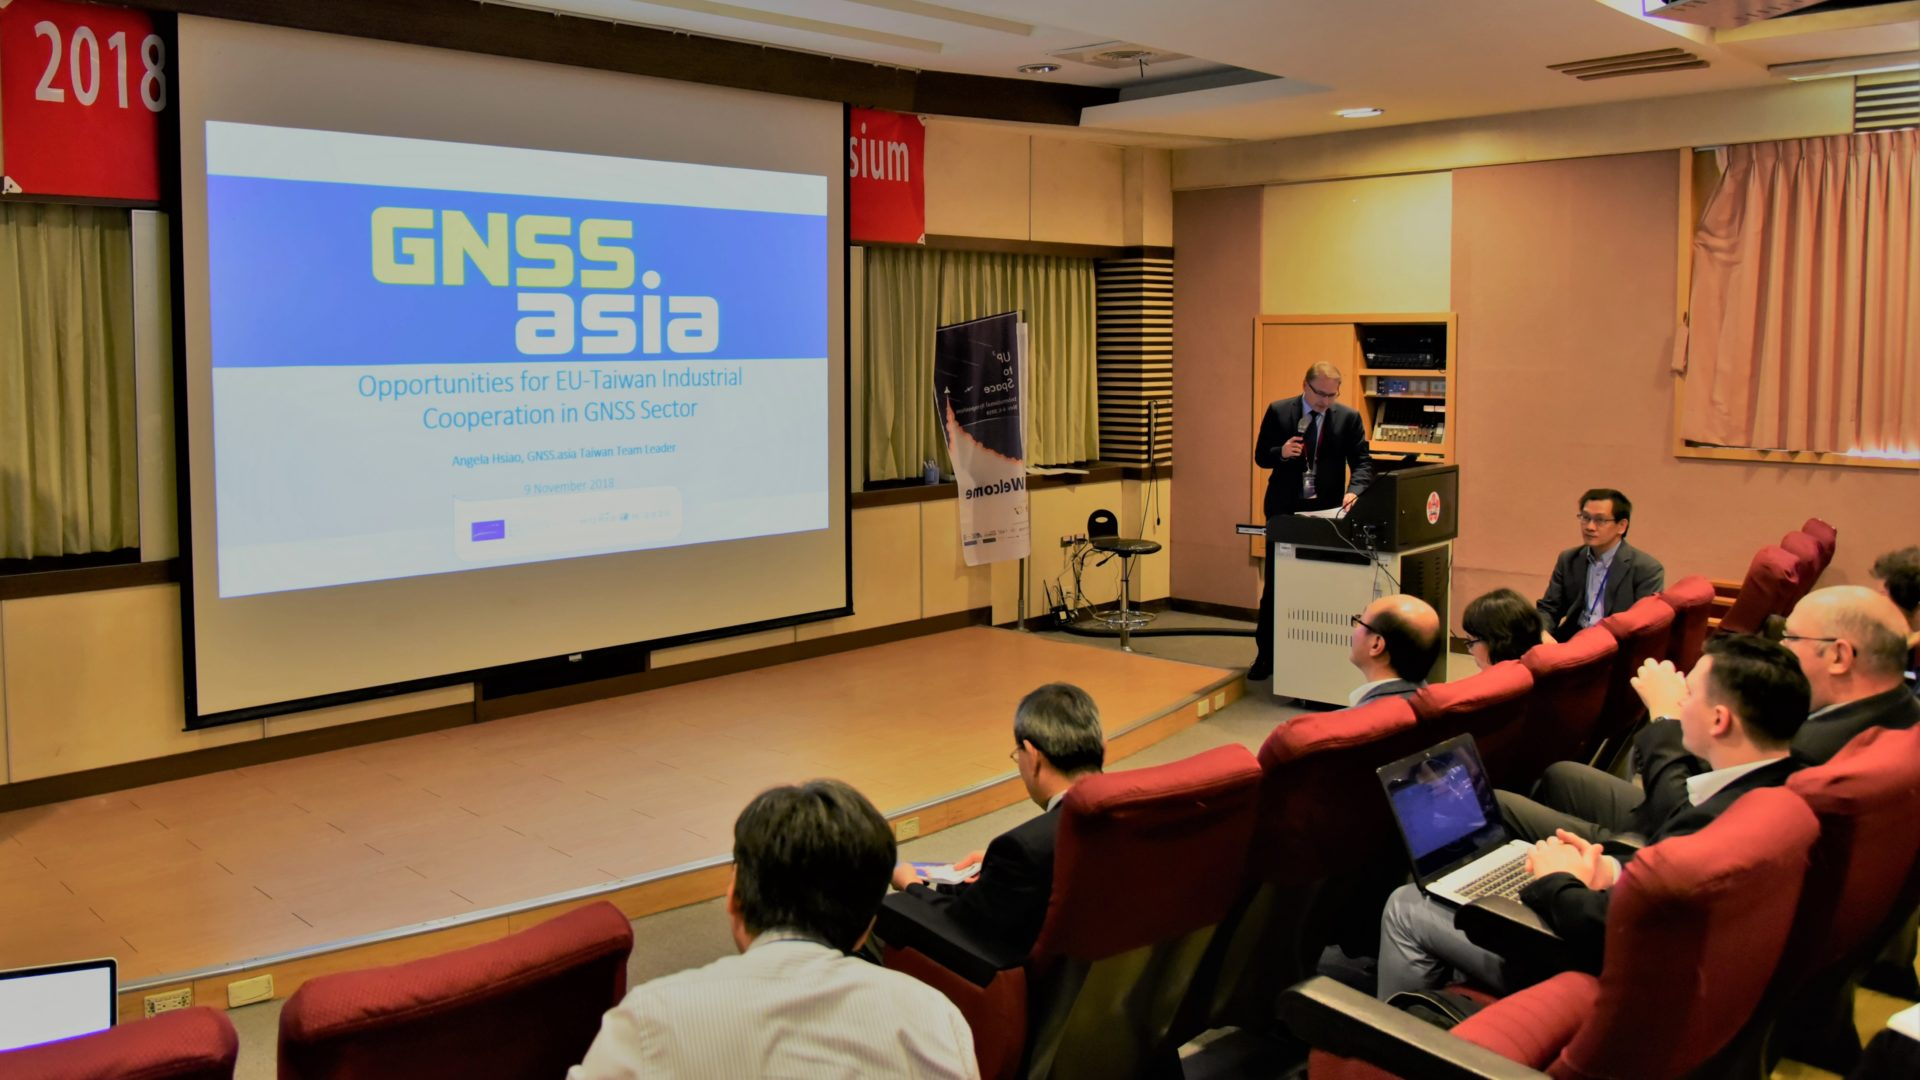 GNSS.asia at 2018 UP³ to Space International Symposium